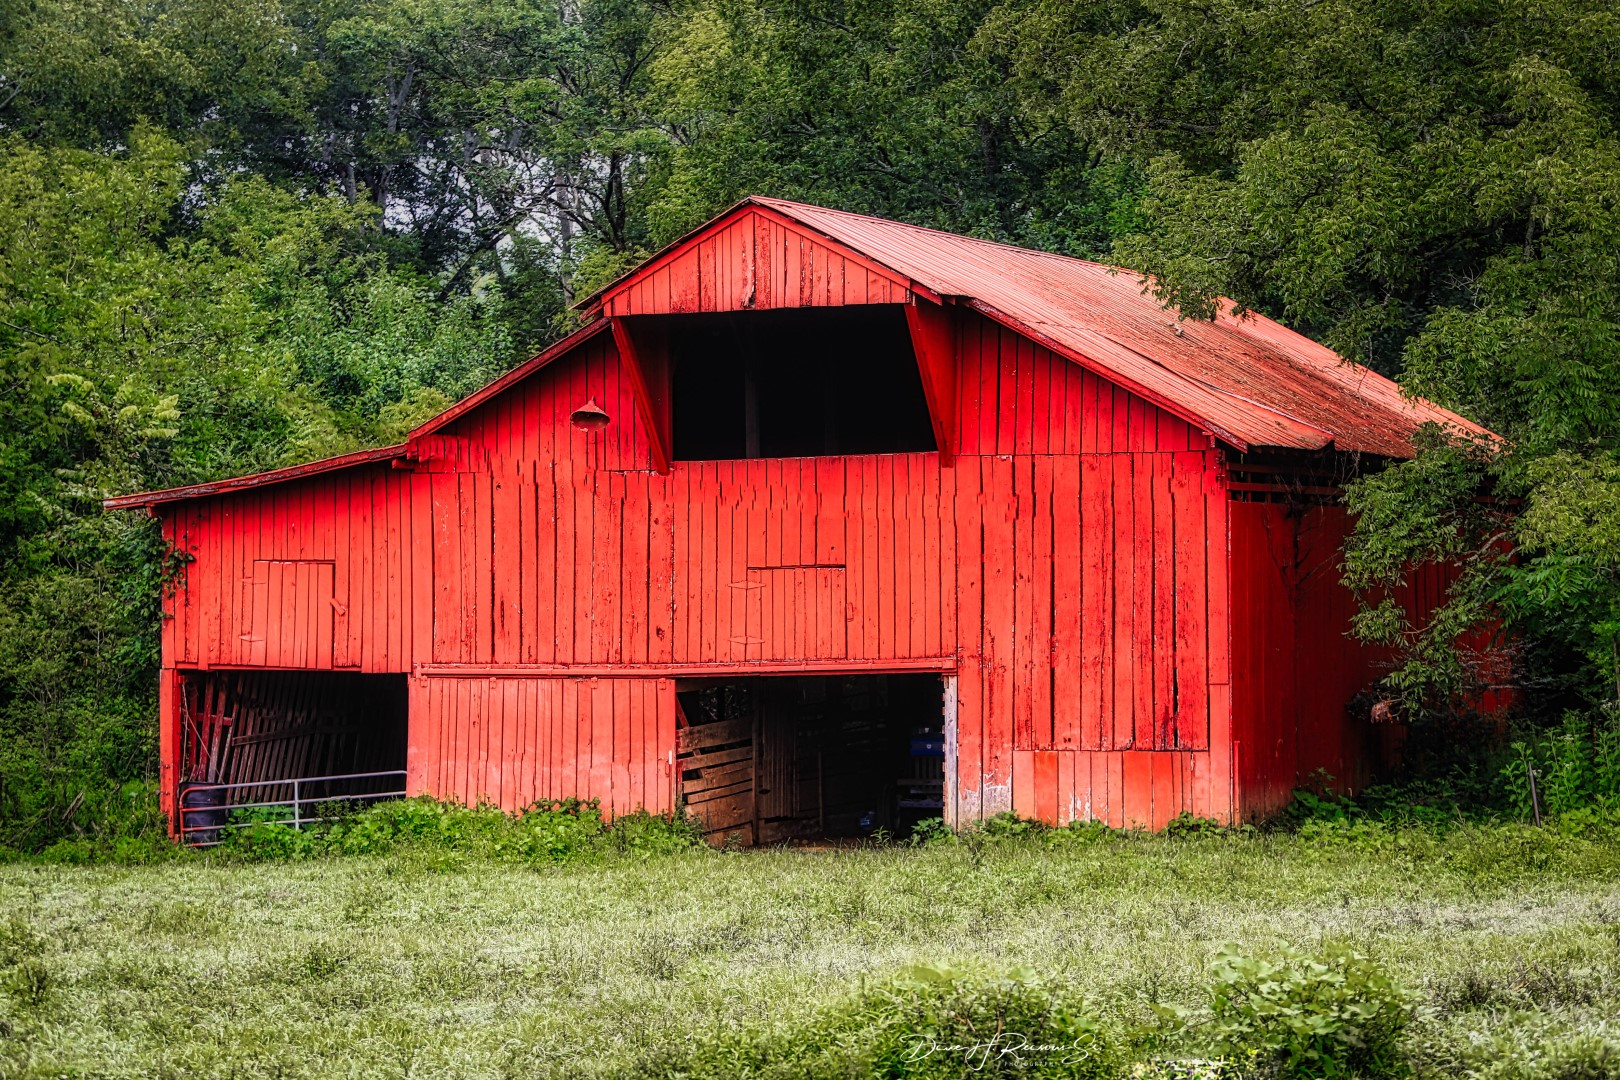 The Red Barn is hard to miss